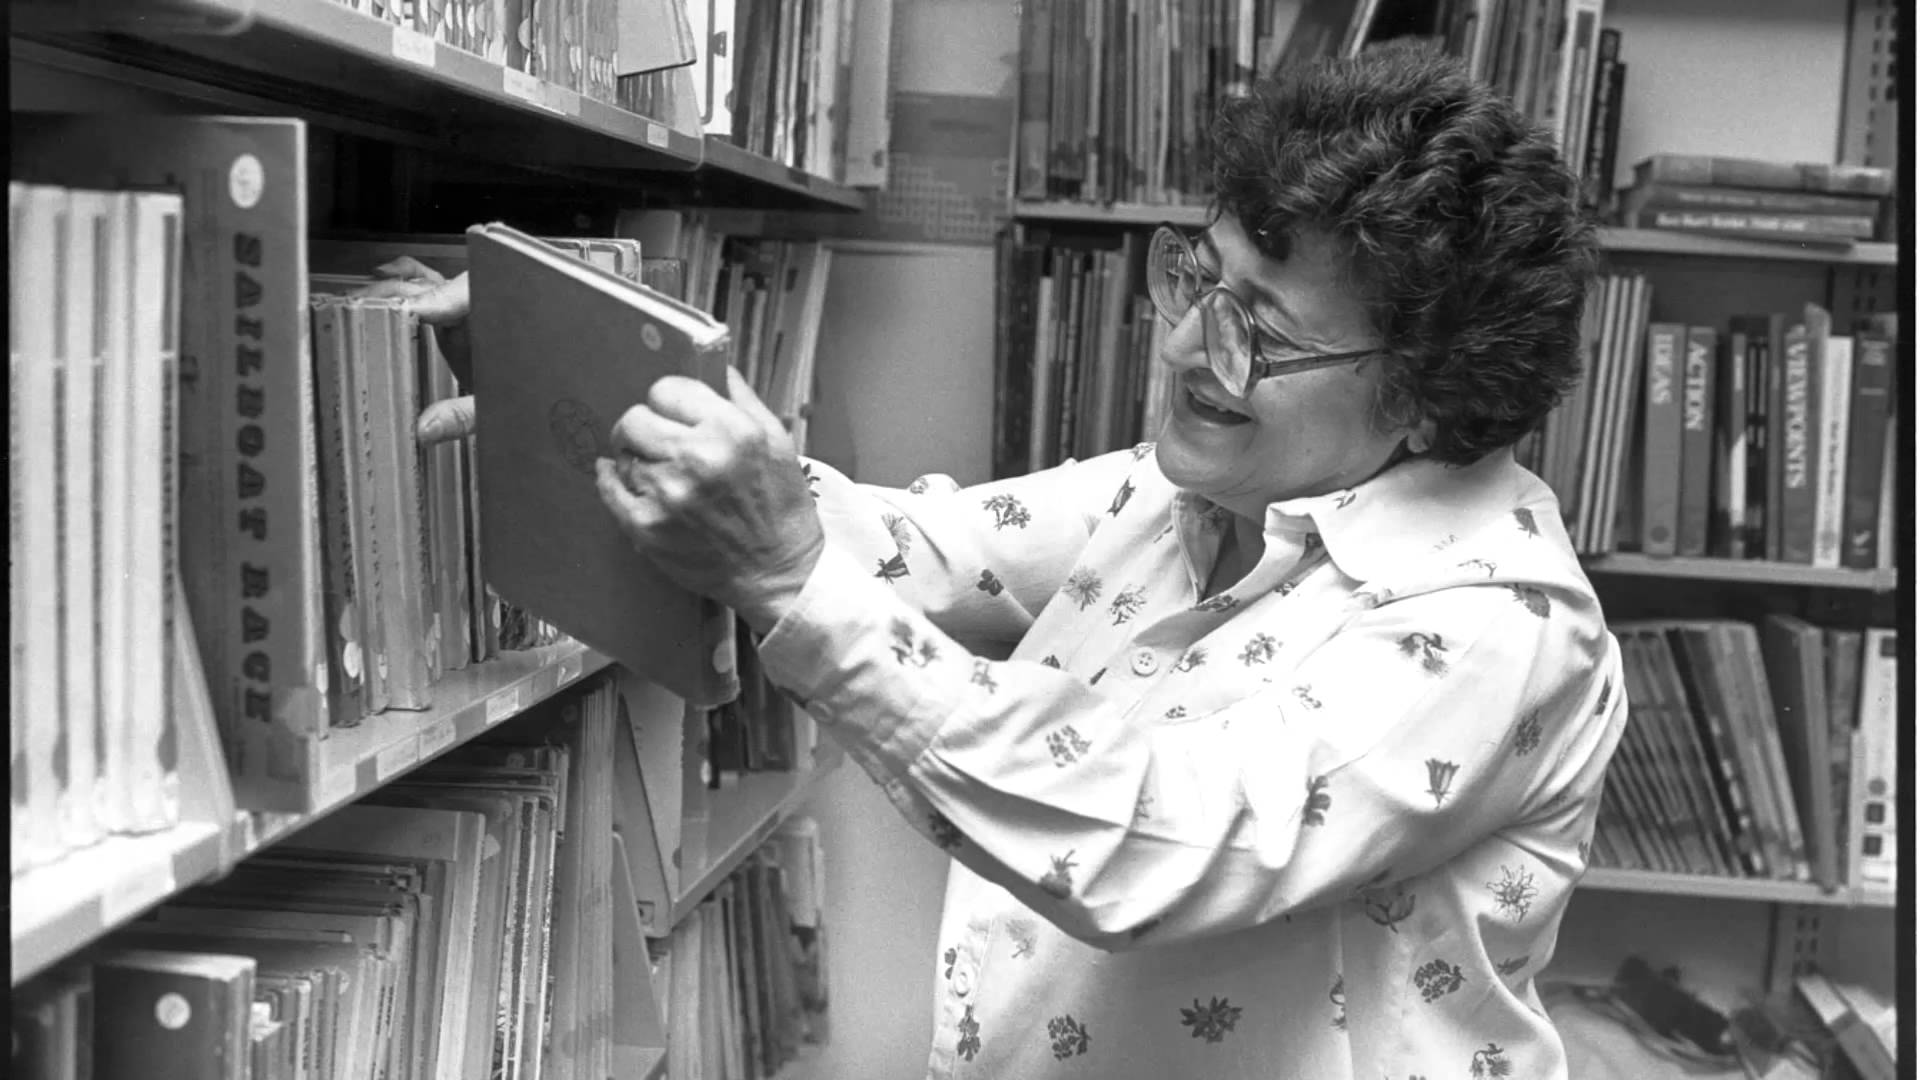 Black and white photograph of Jeanne Chall browsing books on a shelf.